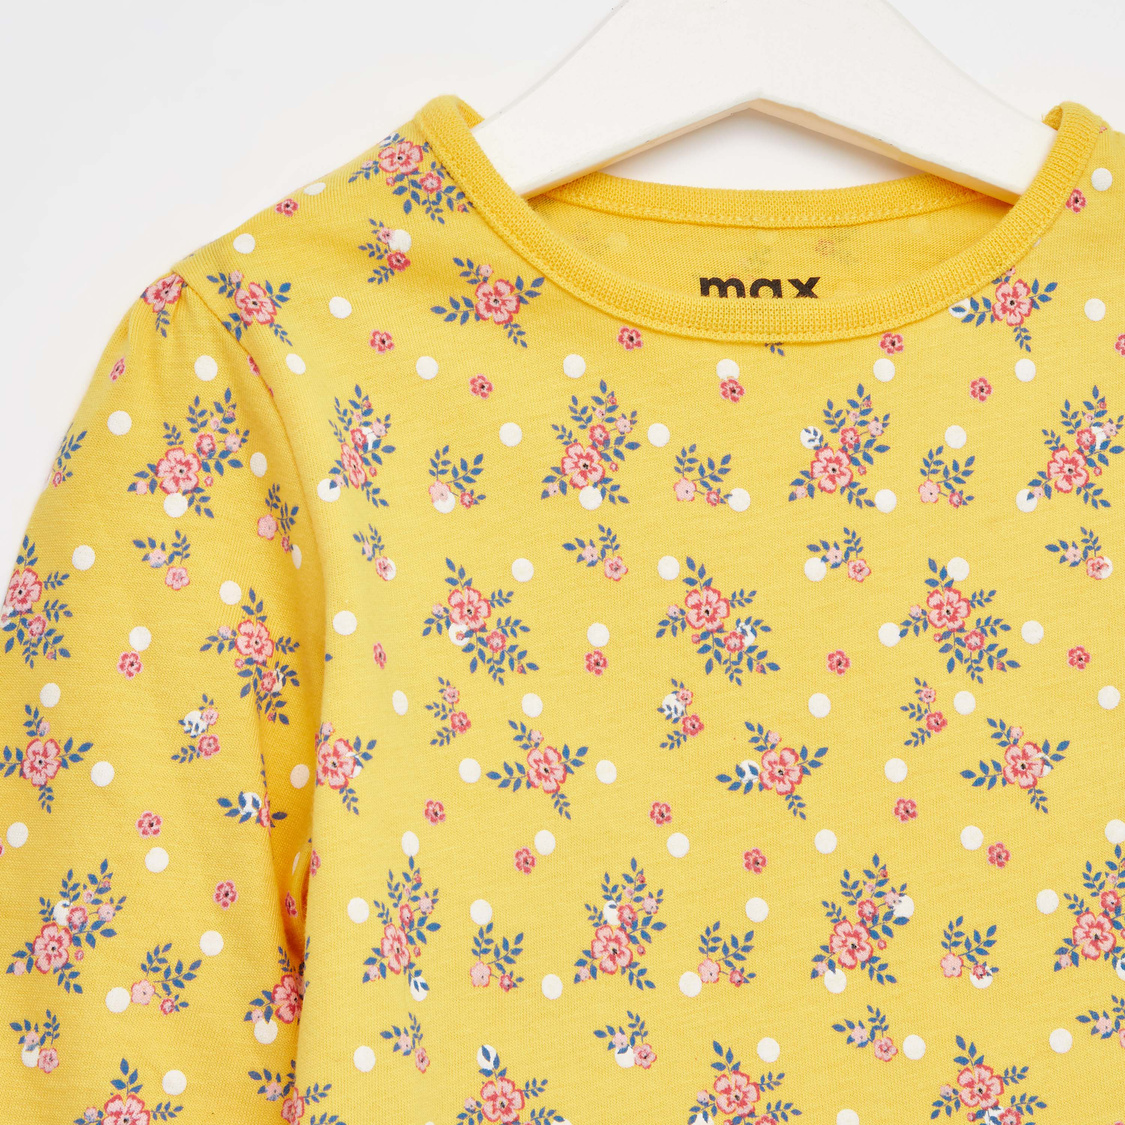 Floral Print Round Neck Top with Long Sleeves